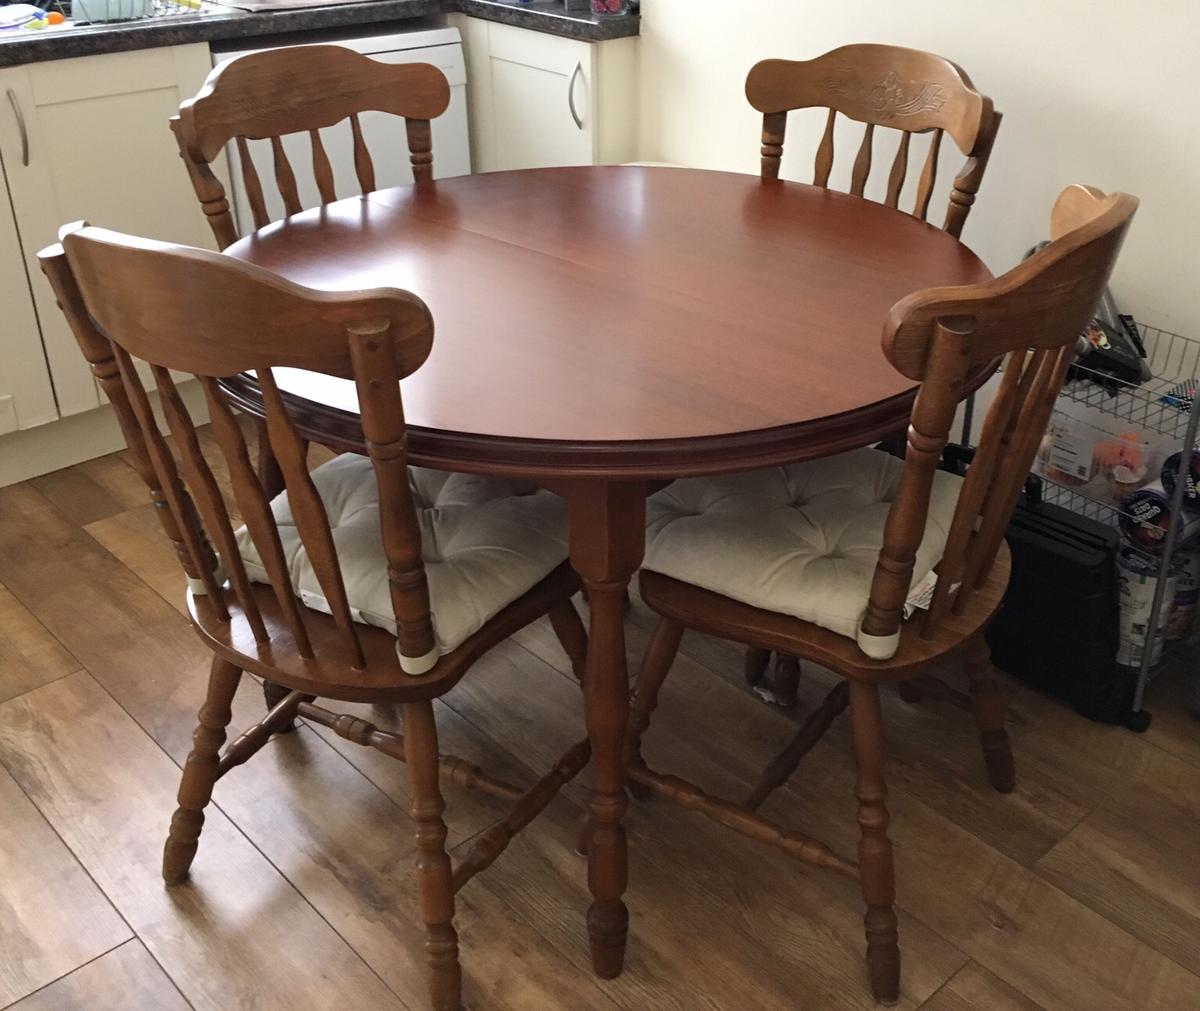 Fine Wooden Round Dining Table With 6 Chairs In L36 Knowsley For Camellatalisay Diy Chair Ideas Camellatalisaycom